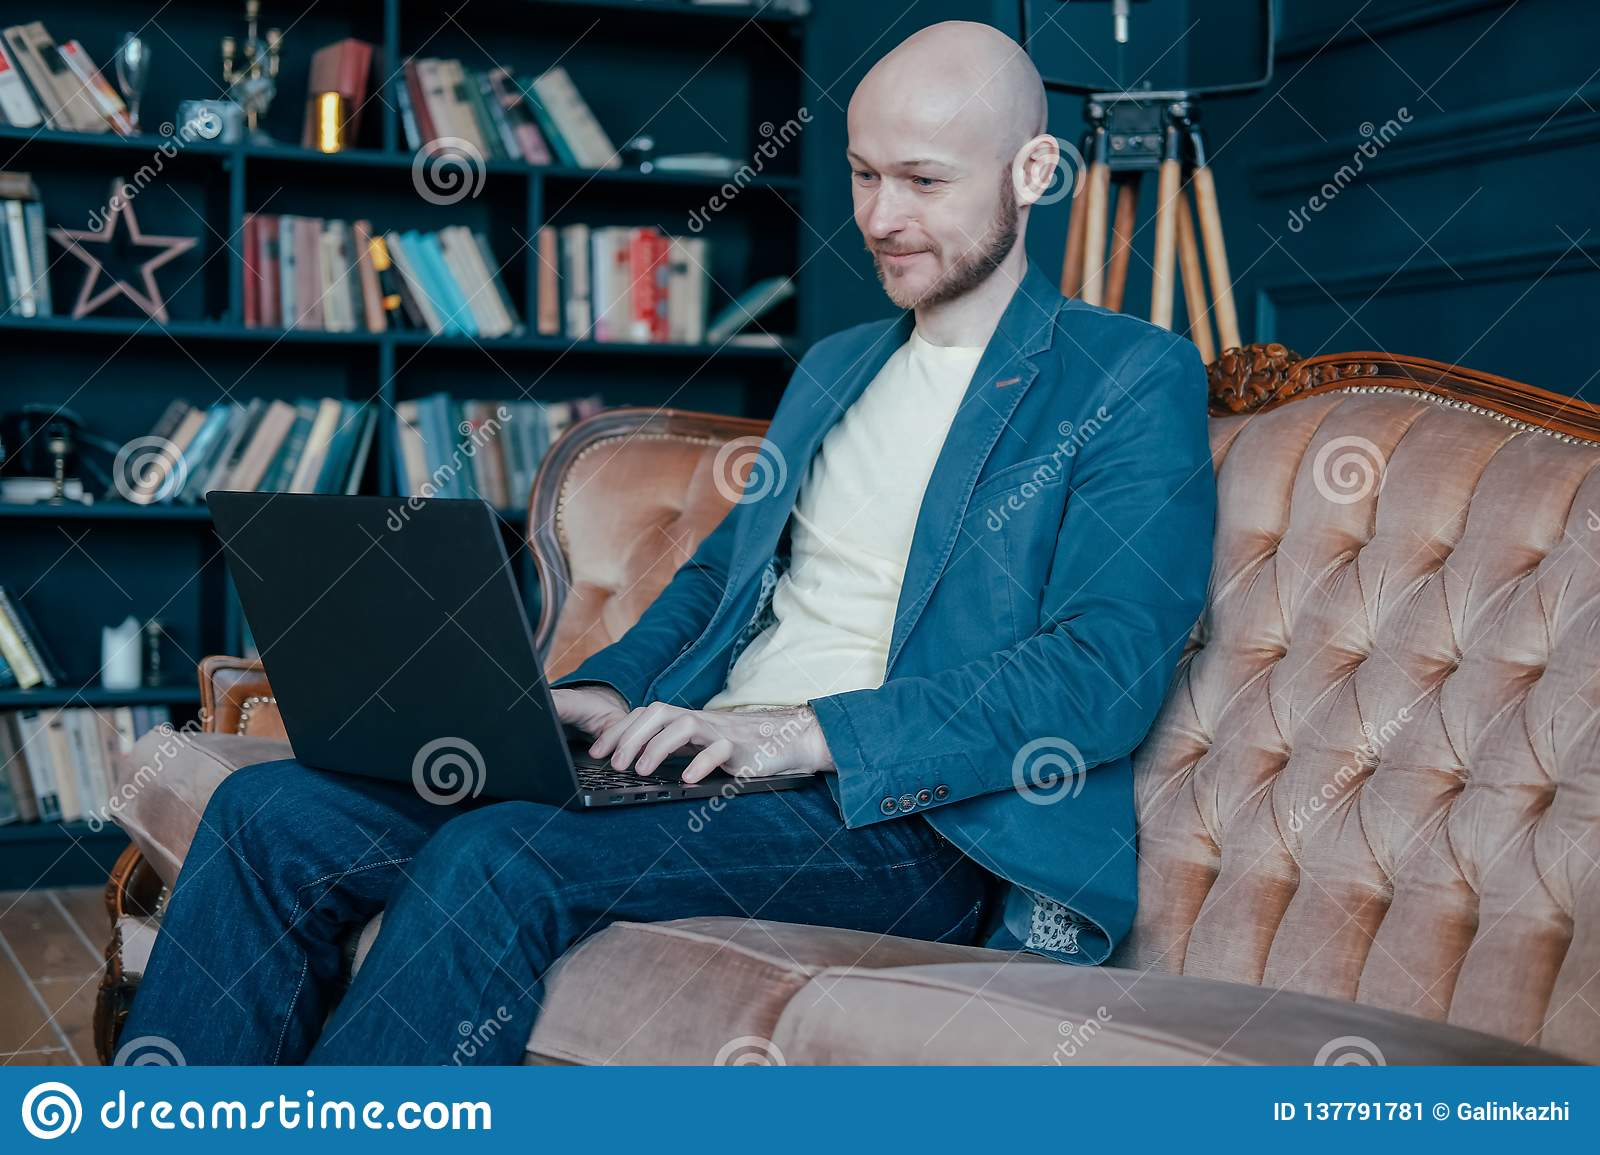 Attractive adult successful smiling bald man with beard in suit working at laptop on his rich cabinet